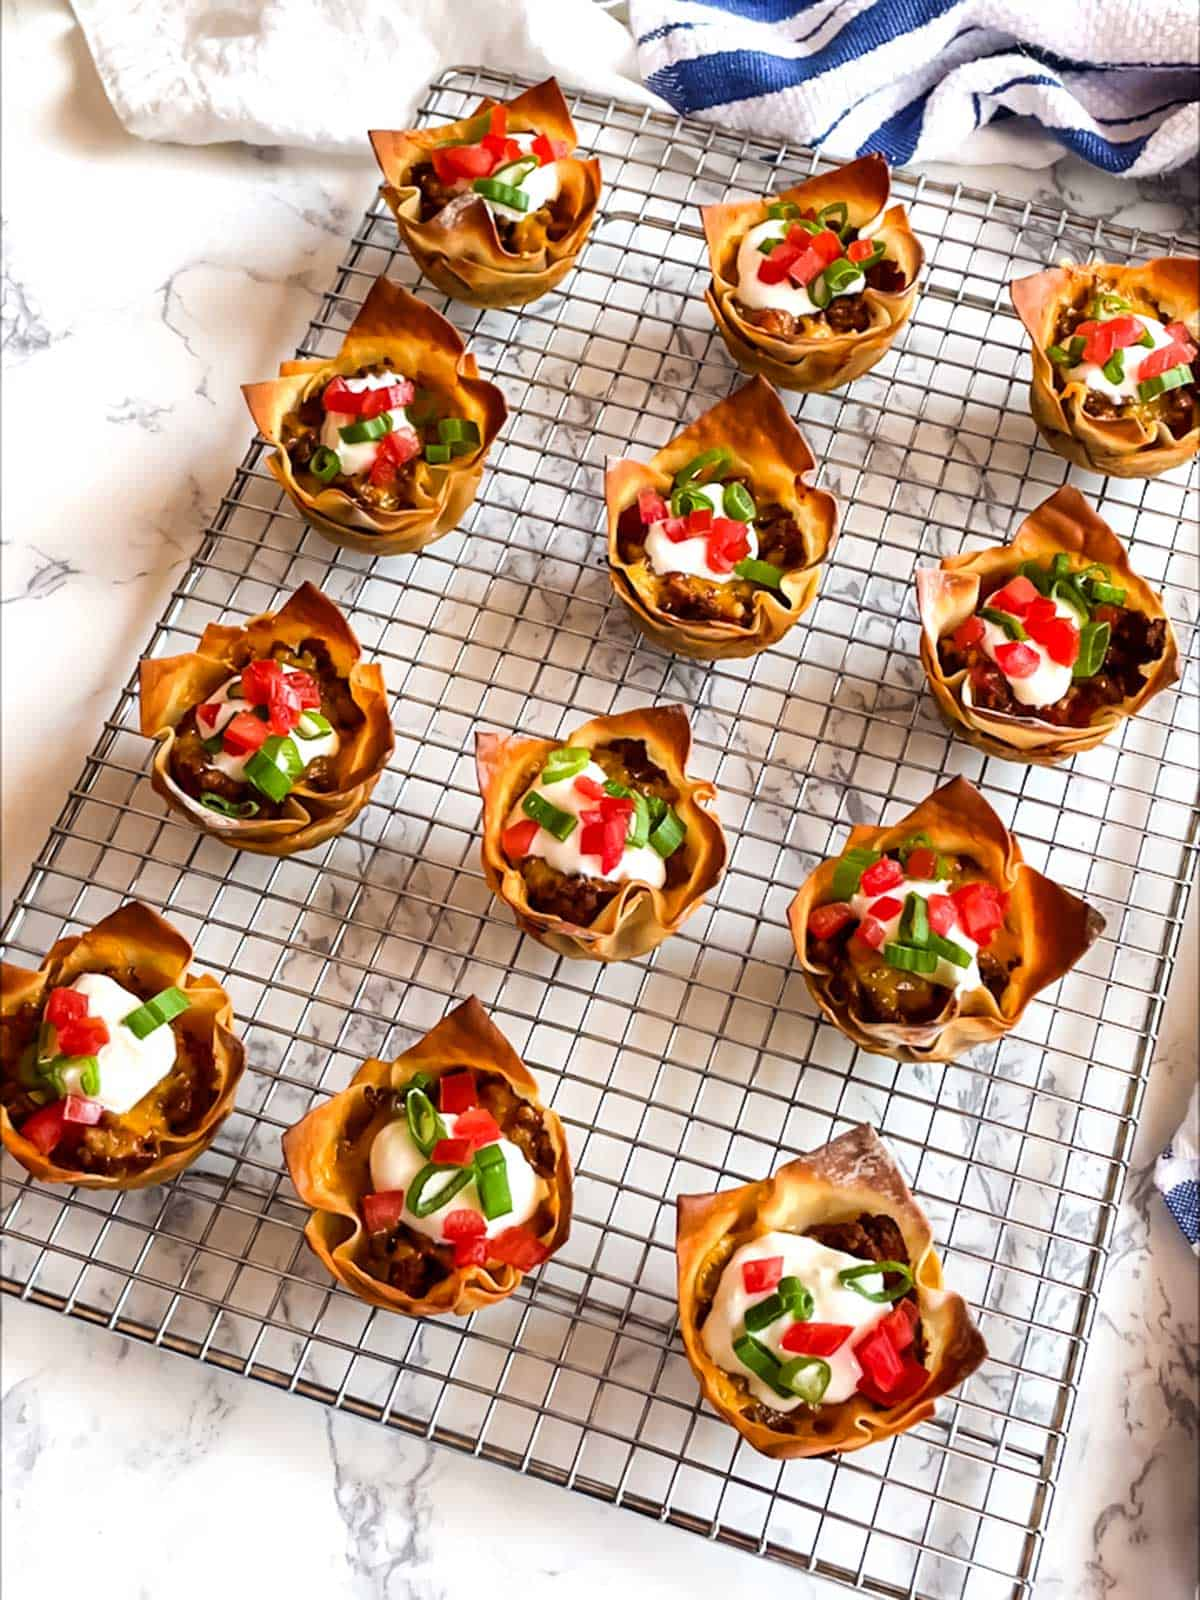 Tasty Taco Cups garnished with sour cream, green onion tops and diced tomatoes.